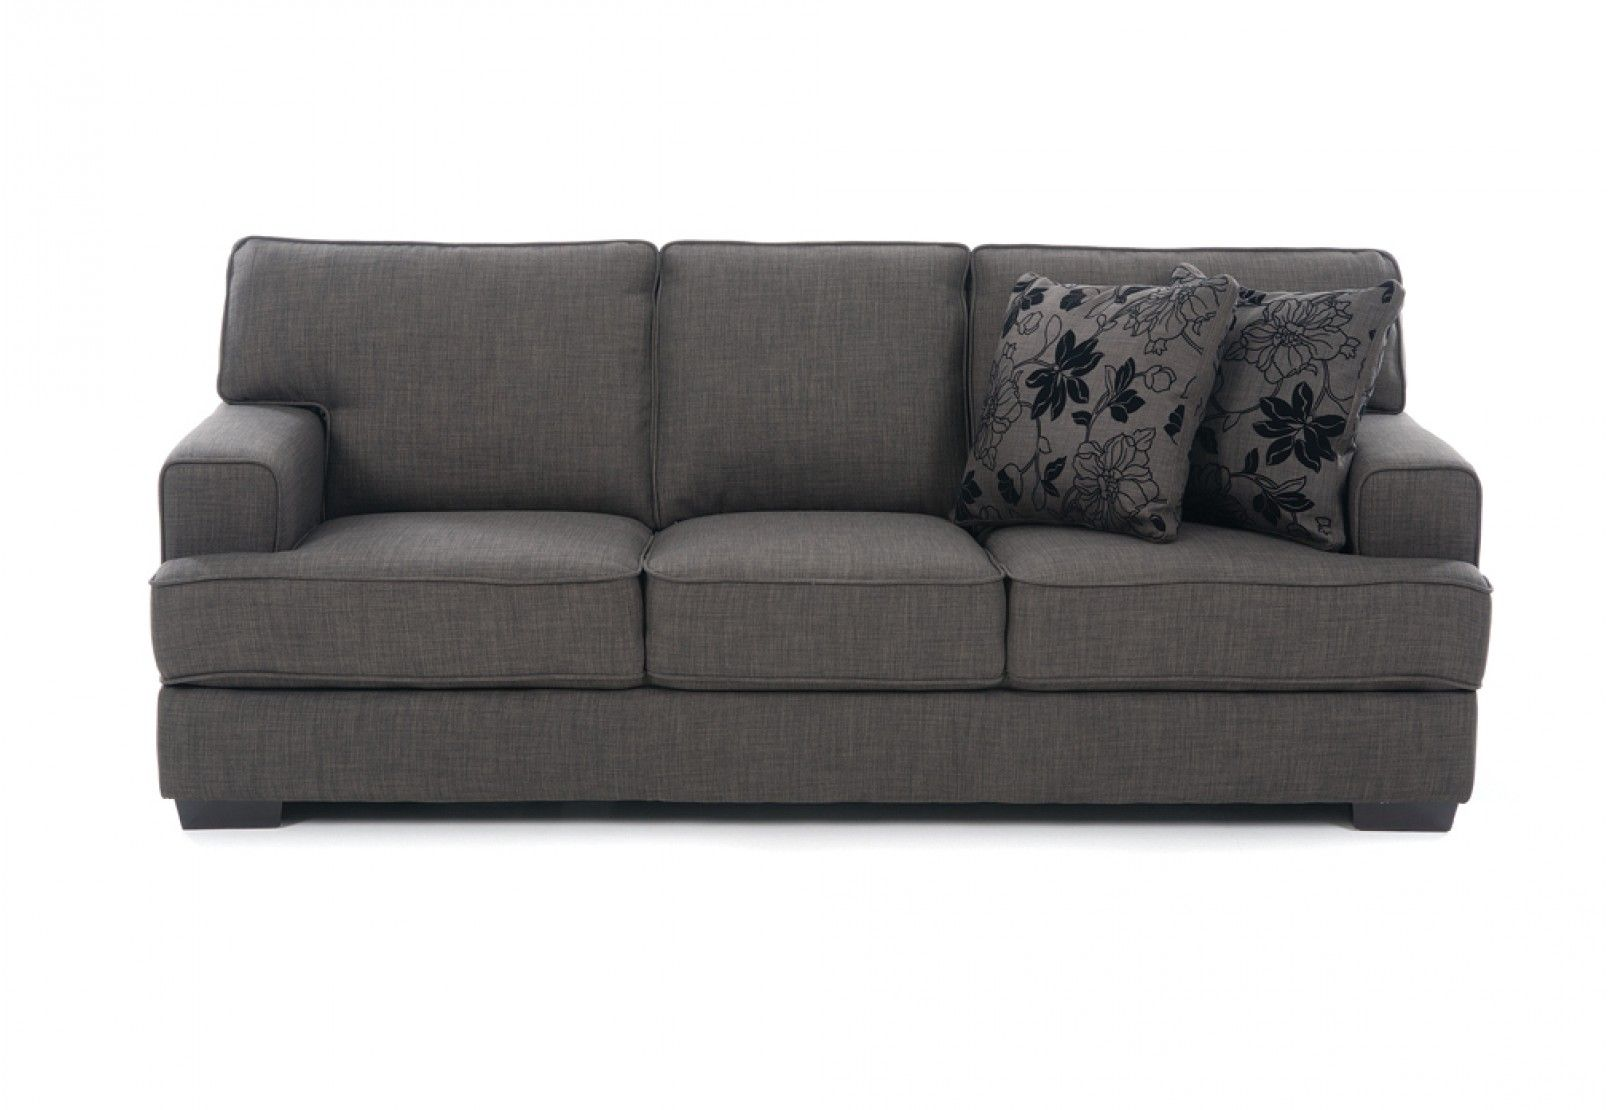 living room furniture budget%0A Shale   seater sofa     mm x D    mm x H    mm      Seater SofaLounge